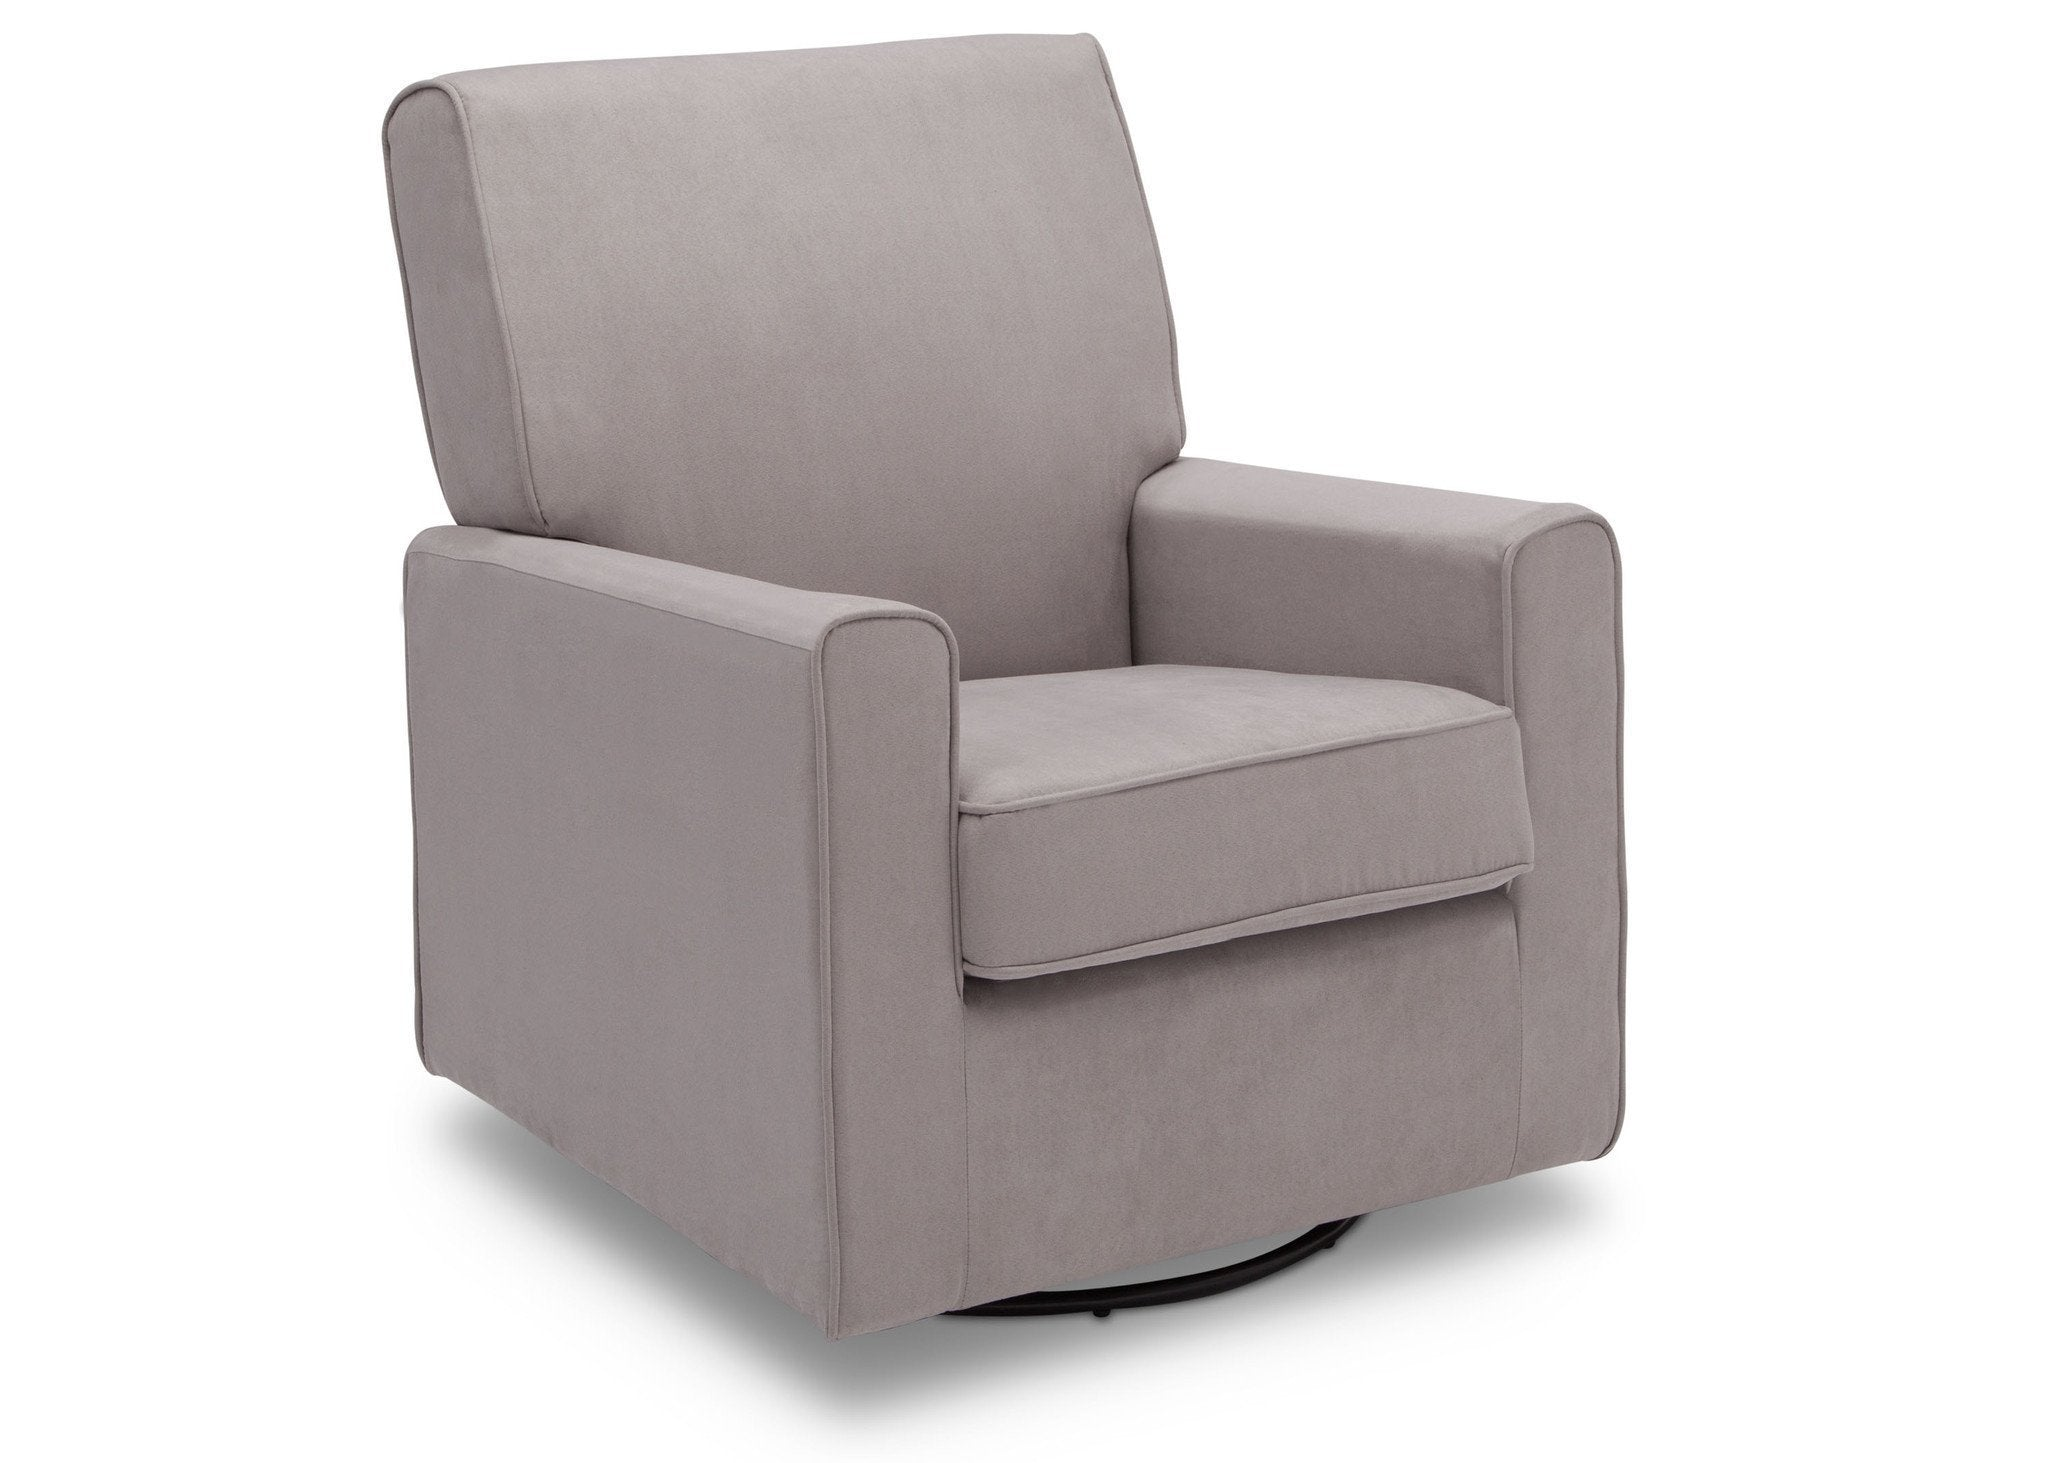 Delta Children Dove Grey (034) Ava Upholstered Glider Side View b3b